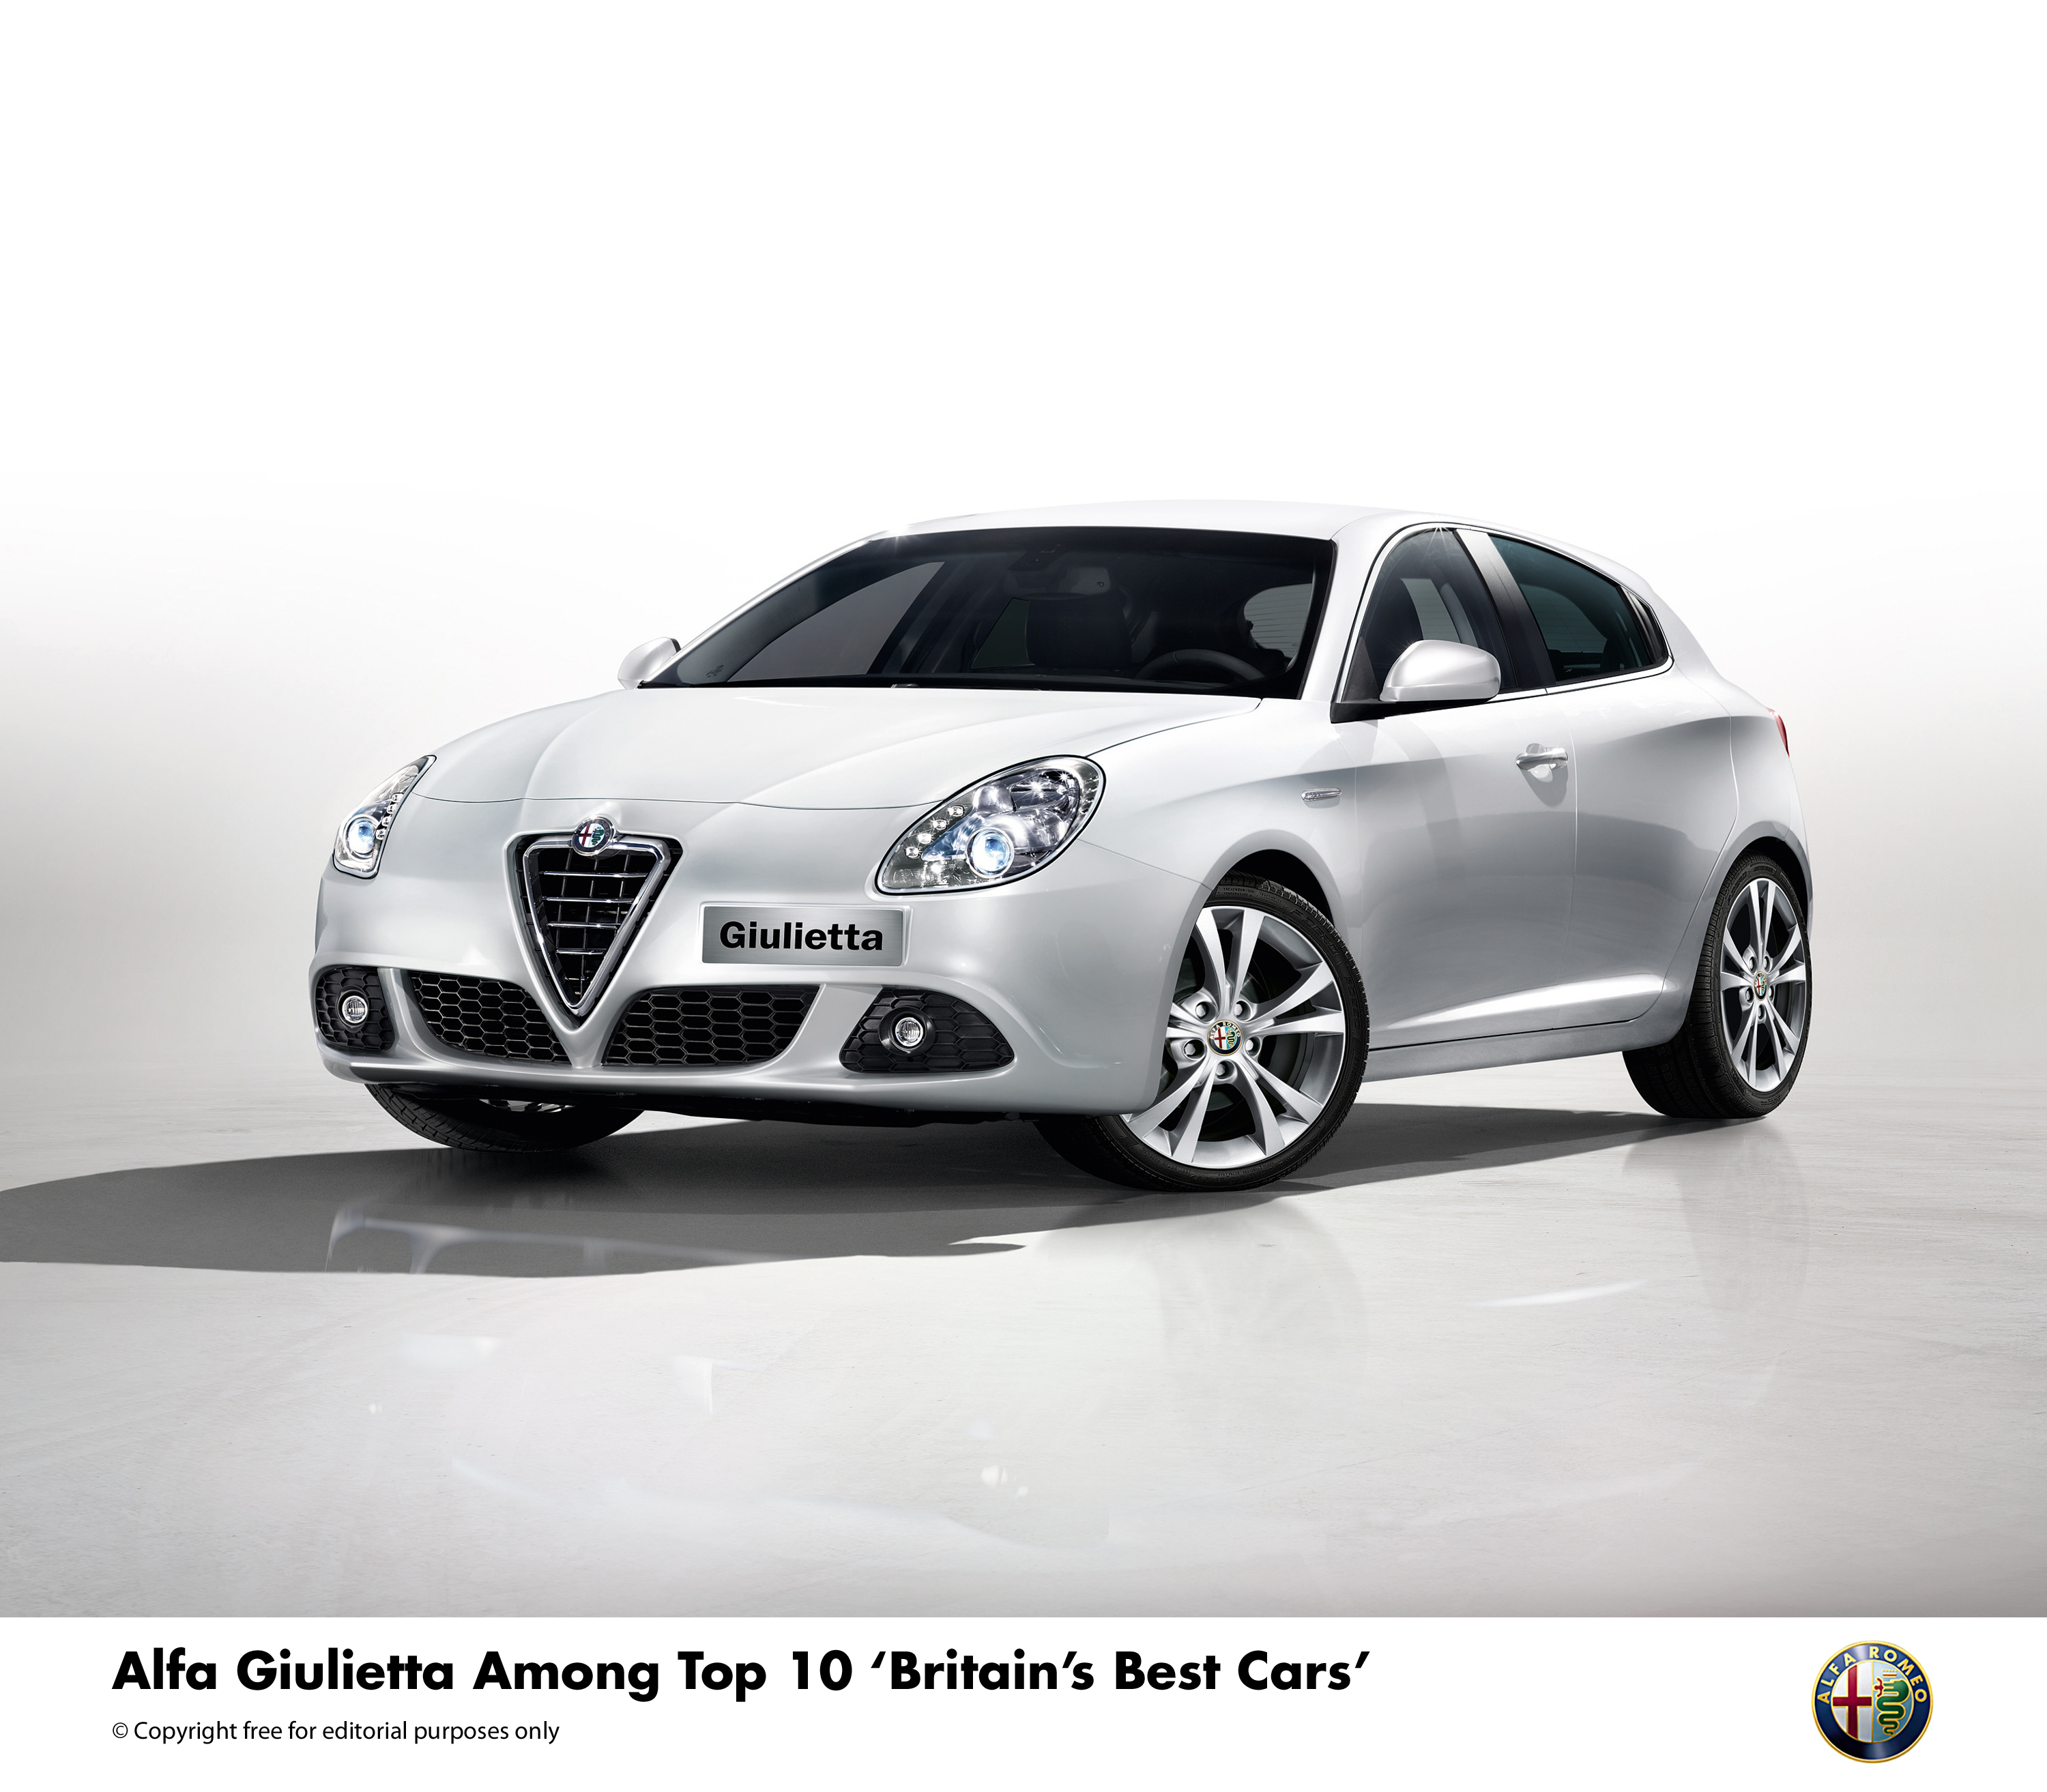 ALFA GIULIETTA AMONG TOP 10 'BRITAIN'S BEST CARS'